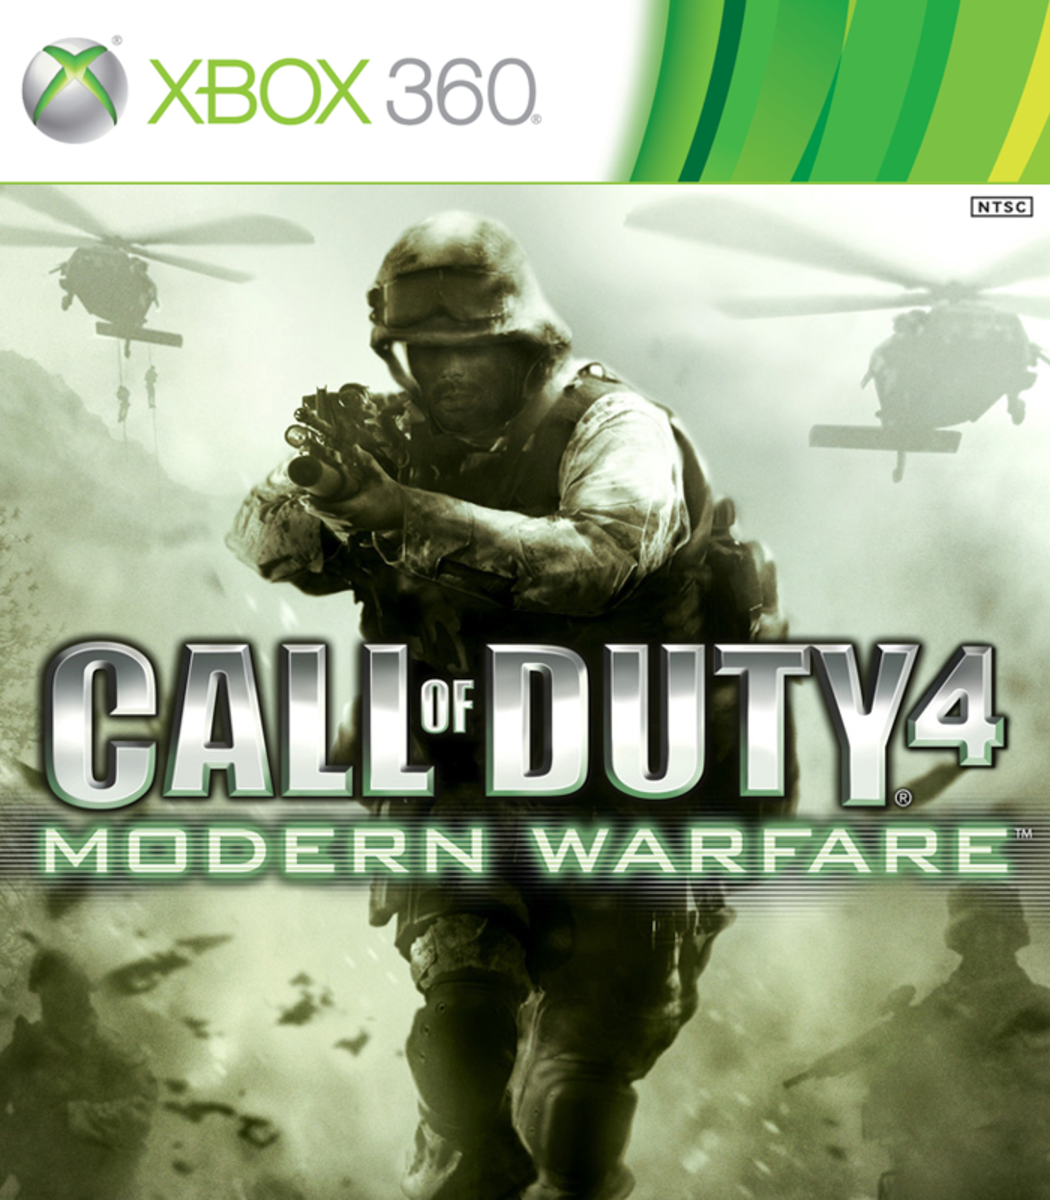 Call of Duty 4: Modern Warfare XBOX 360 game cover